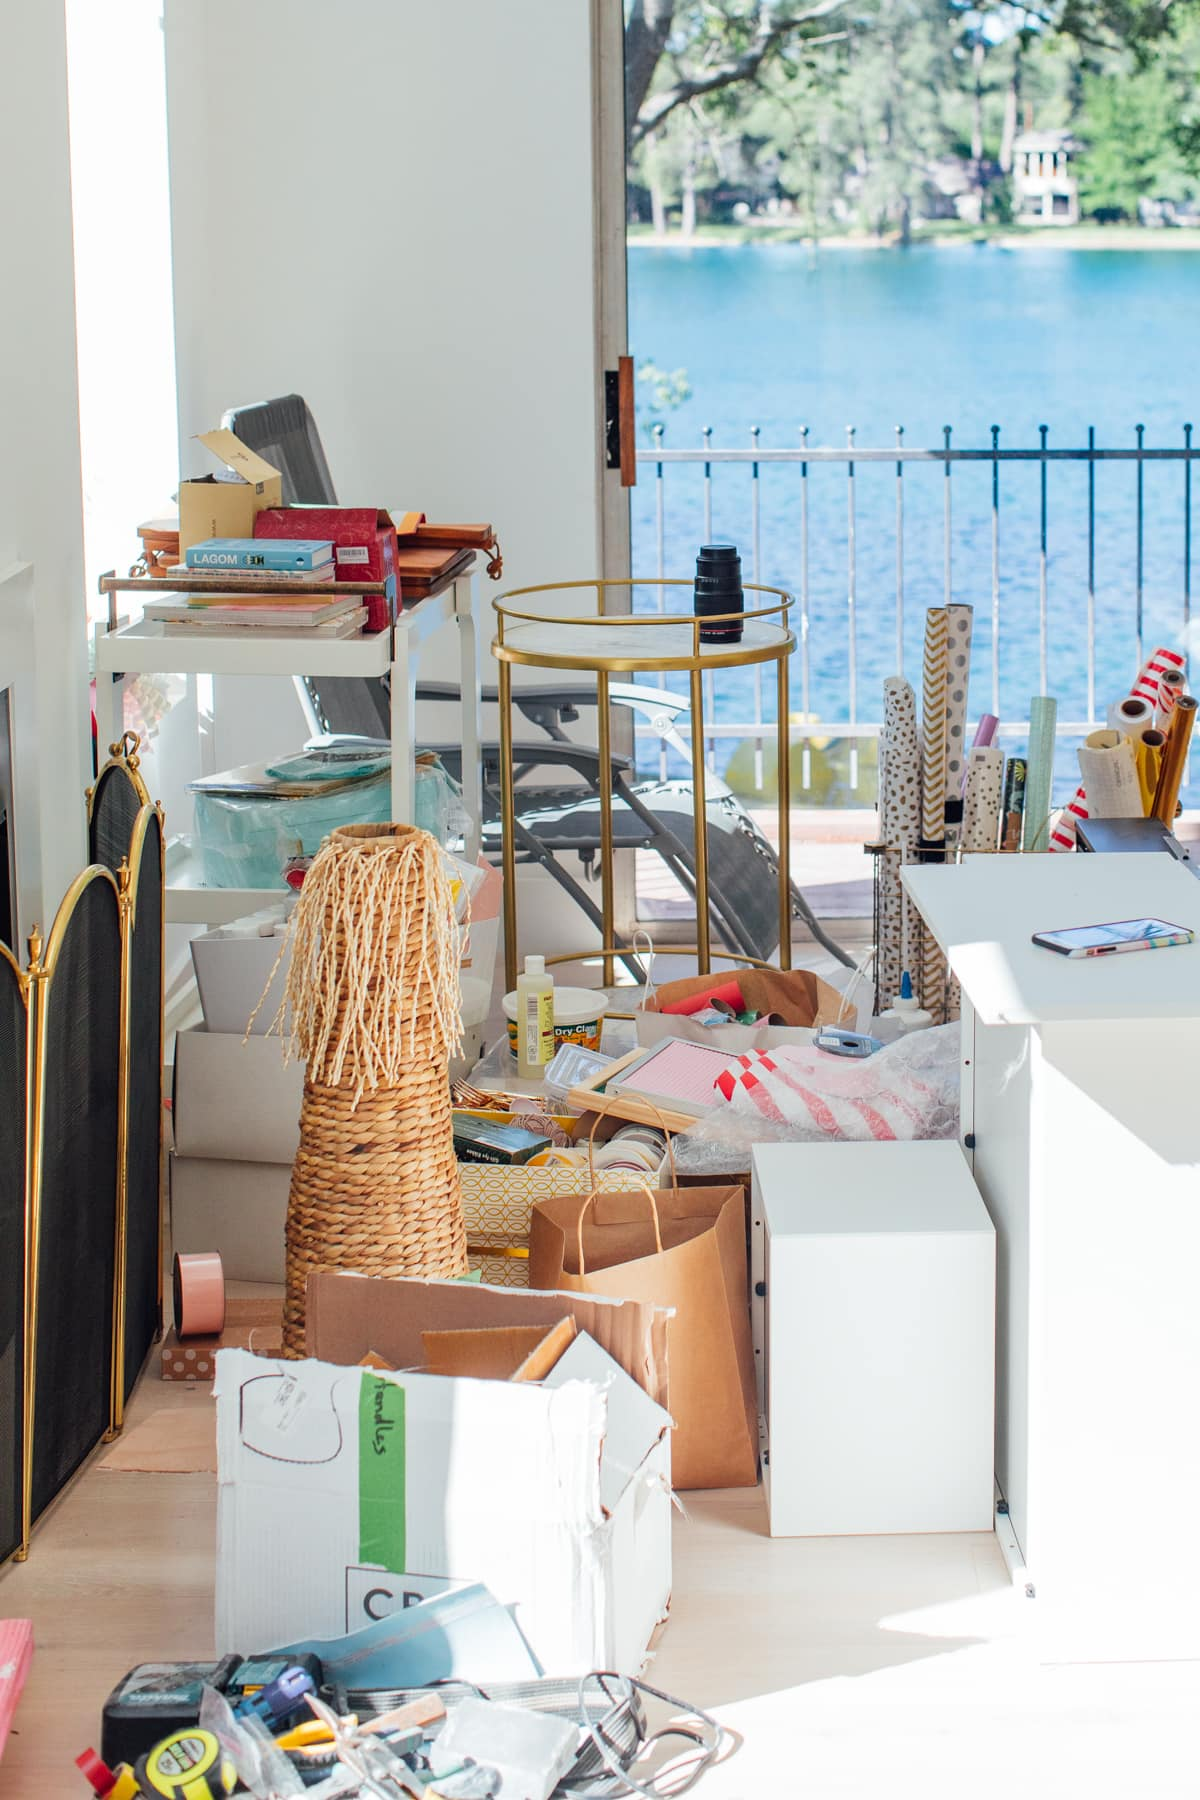 the messy part of my studio! A Peek Inside My New Studio & Craft Closet by top Houston lifestyle blogger Ashley Rose of Sugar & Cloth #design #organizing #interiors #craft #craftroom